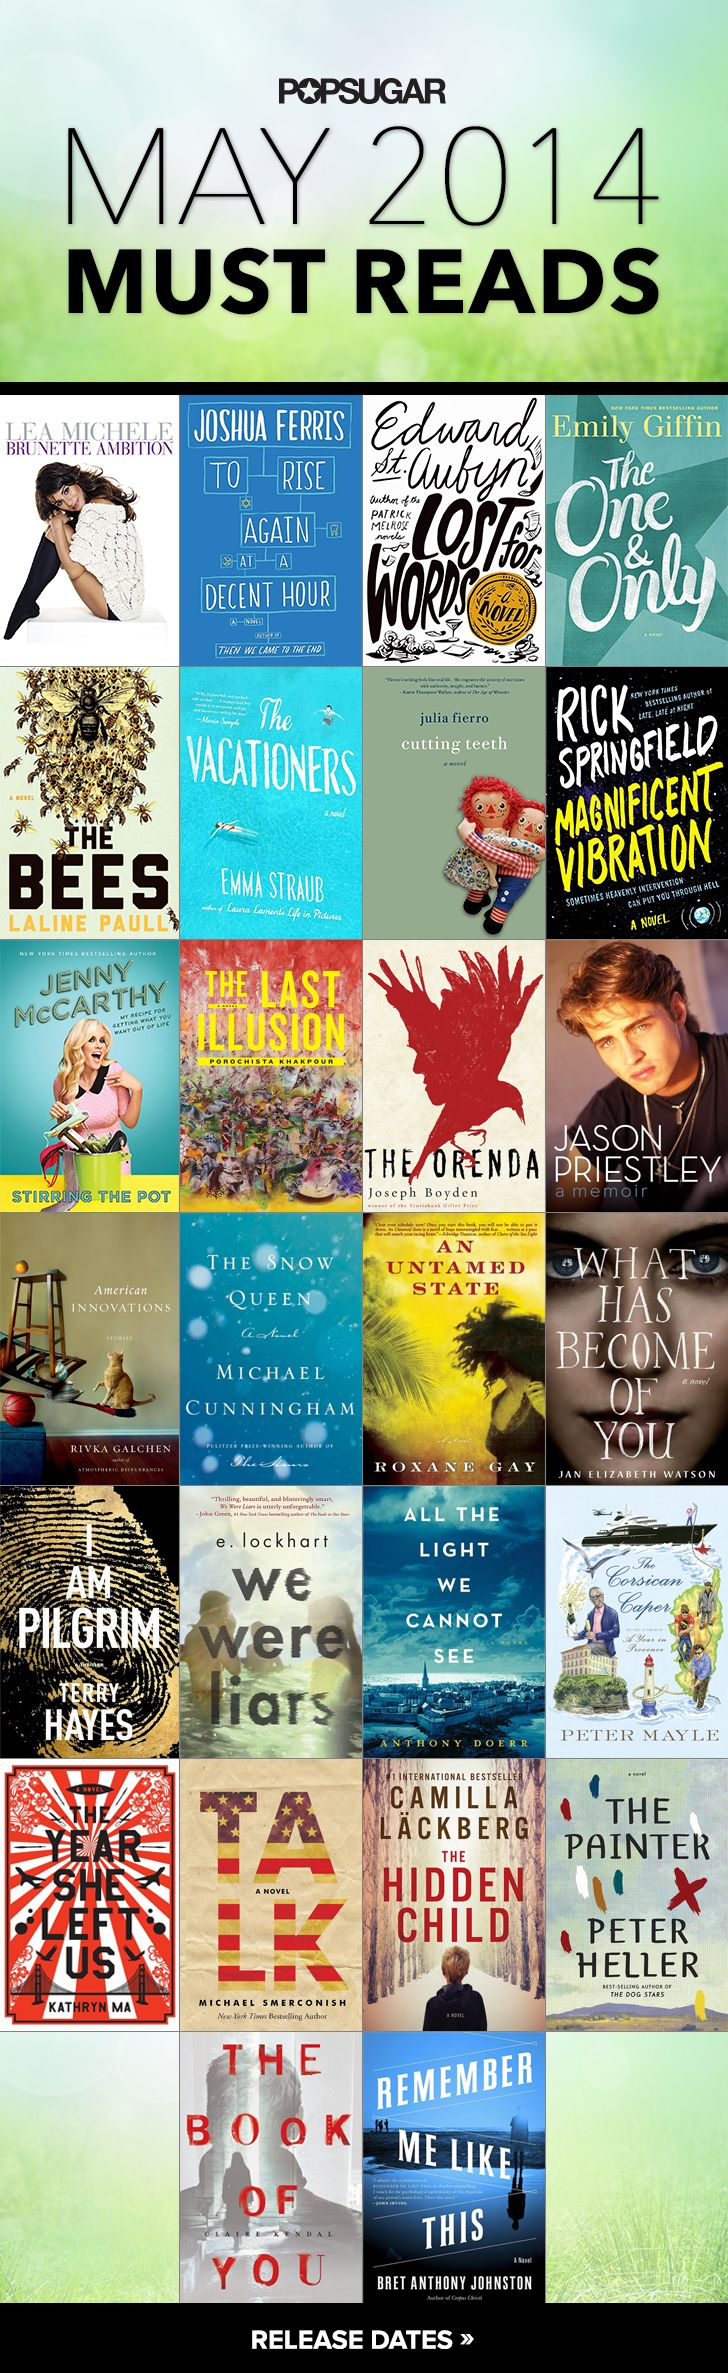 May: Must Reads via Popsugar, hmmm, I've read the Jenny McCarthy book, but wasn't impressed, guess I'll move on to these others